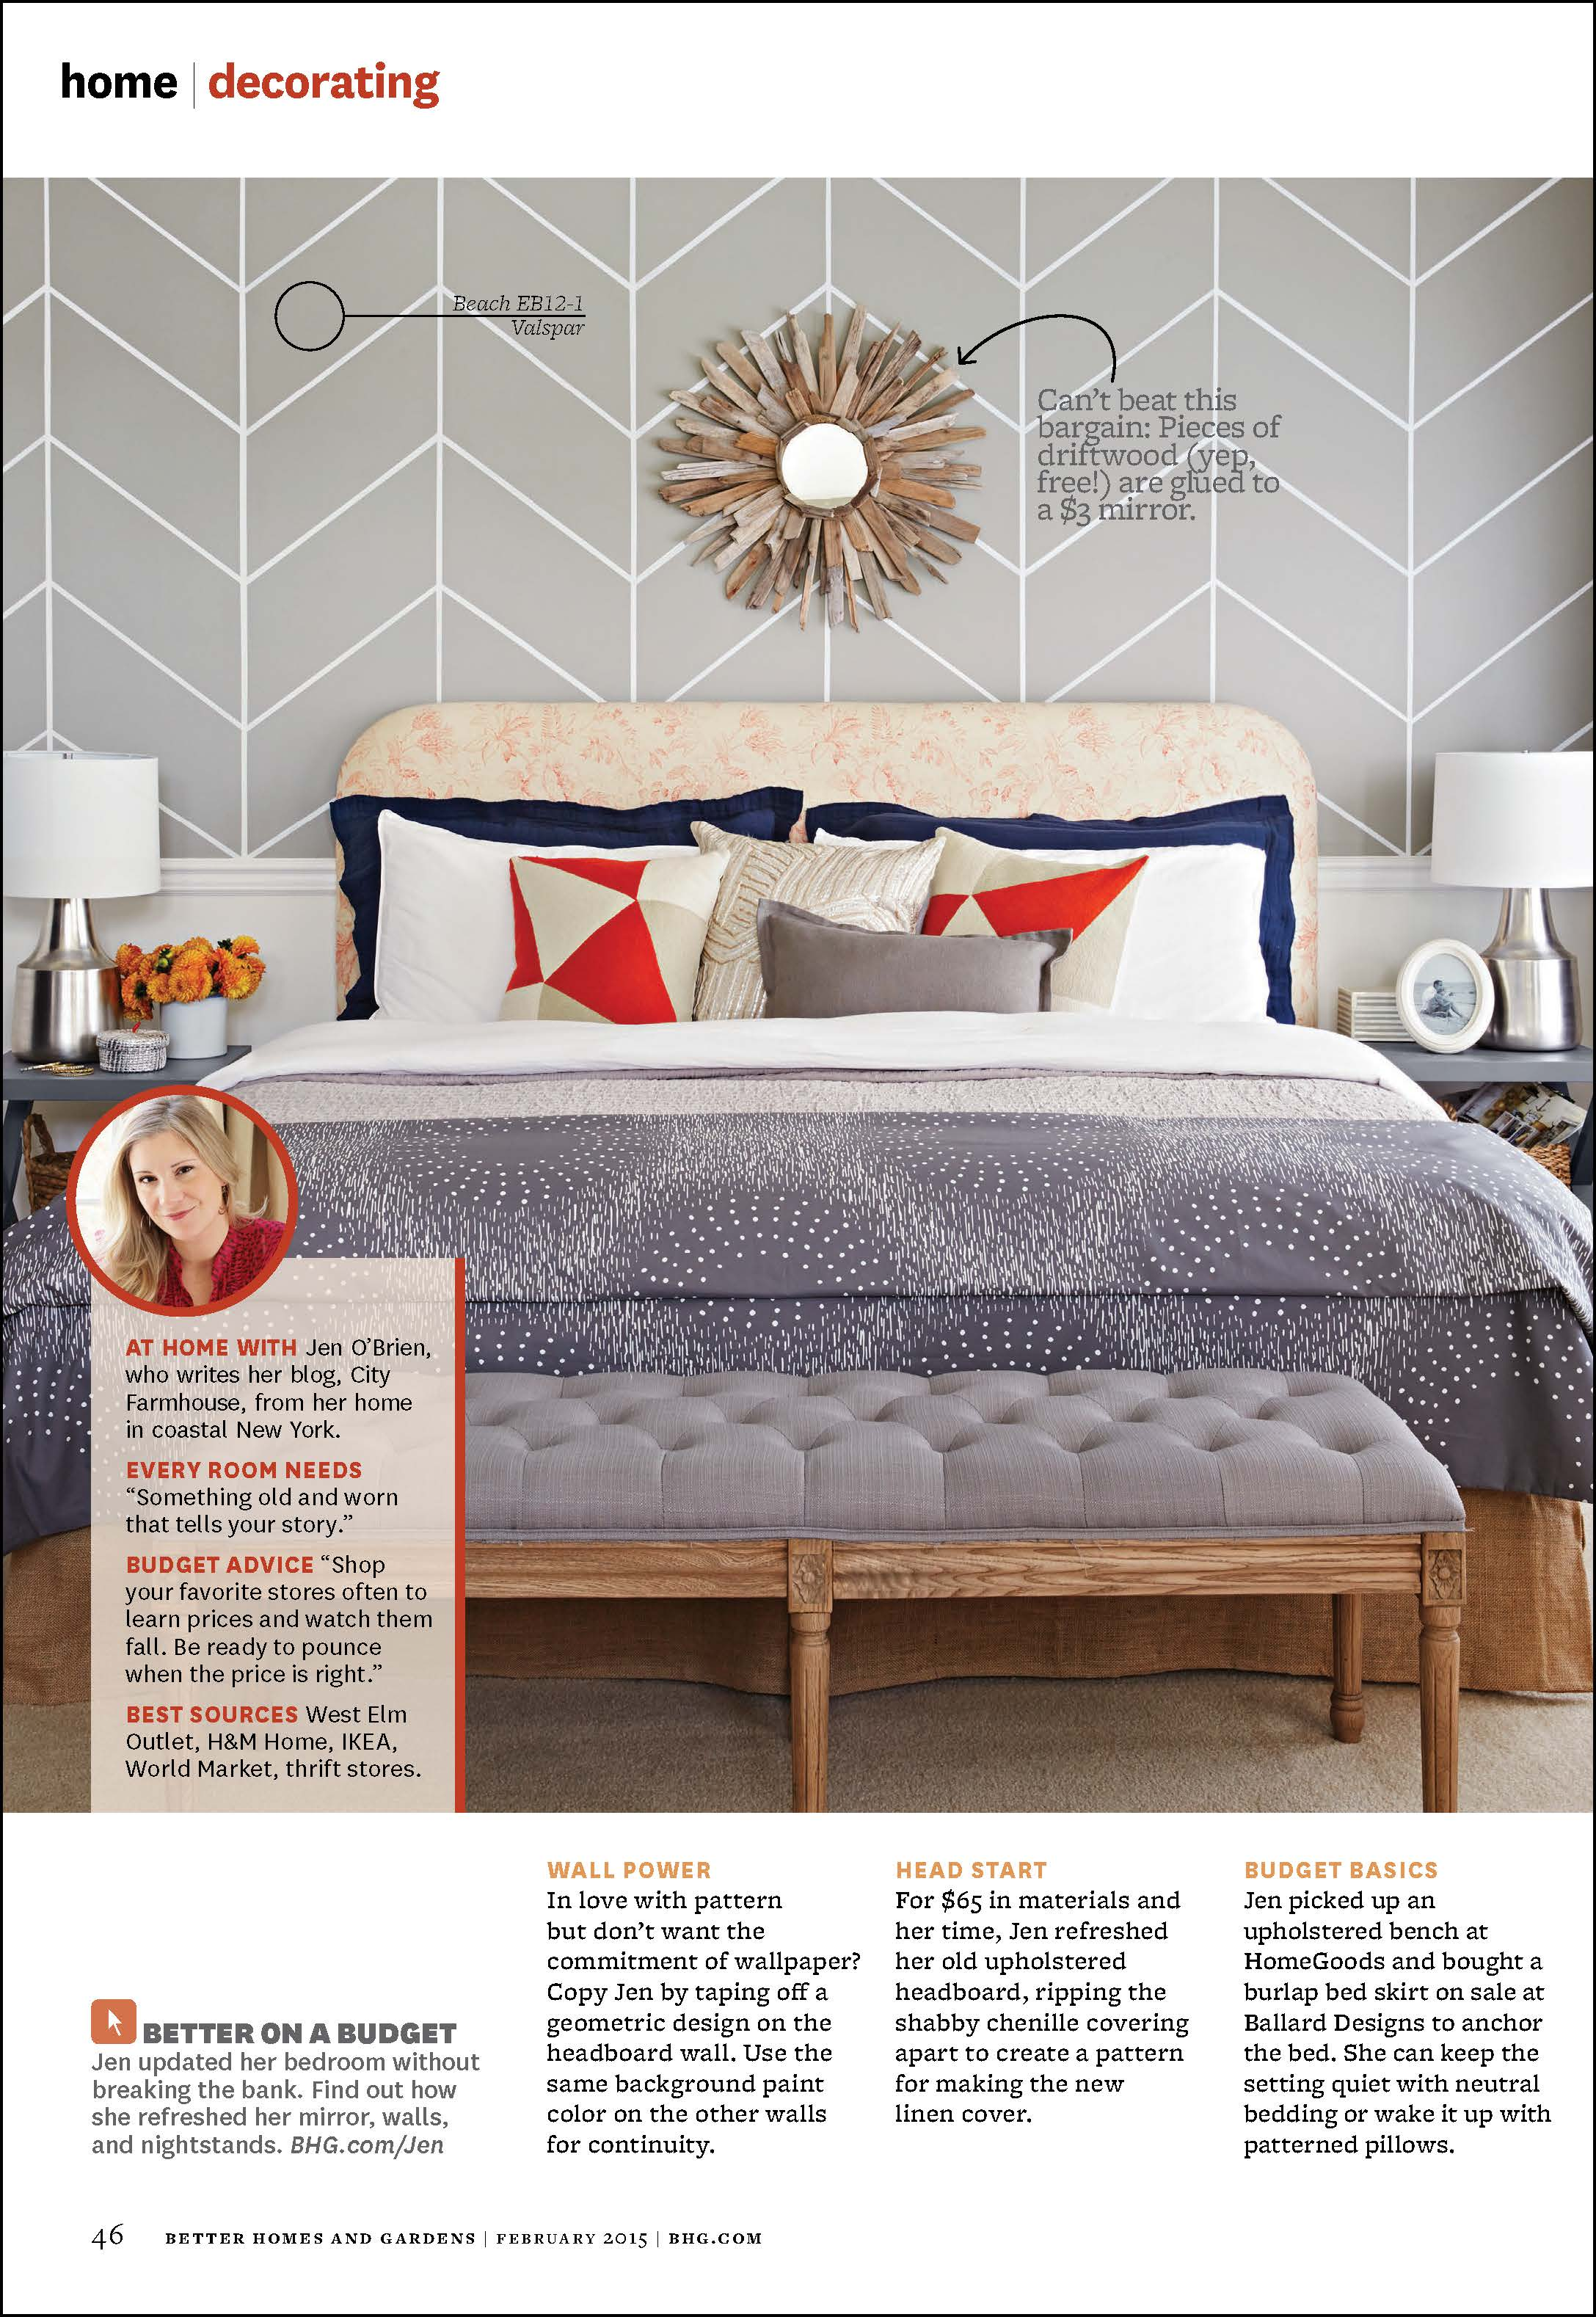 A Look at Decorating with Color: 2008-2018 - Page 8 of 11 ...